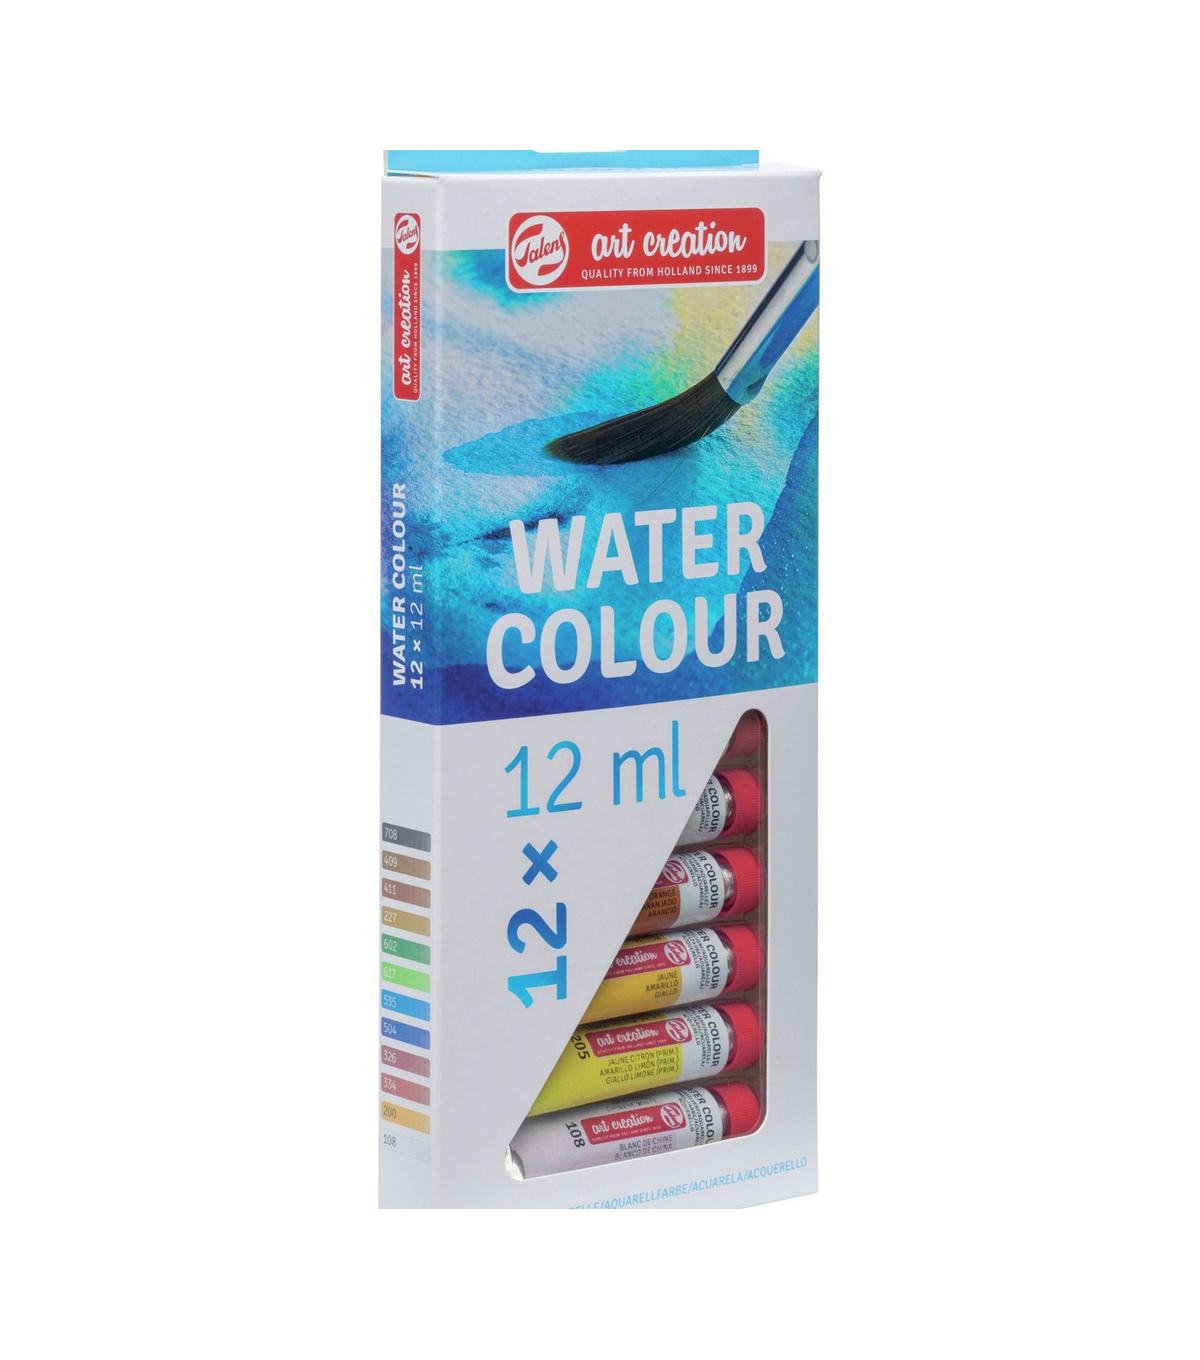 Talens Art Creation 12 pk 0.4 fl. oz. Water Colour Paint